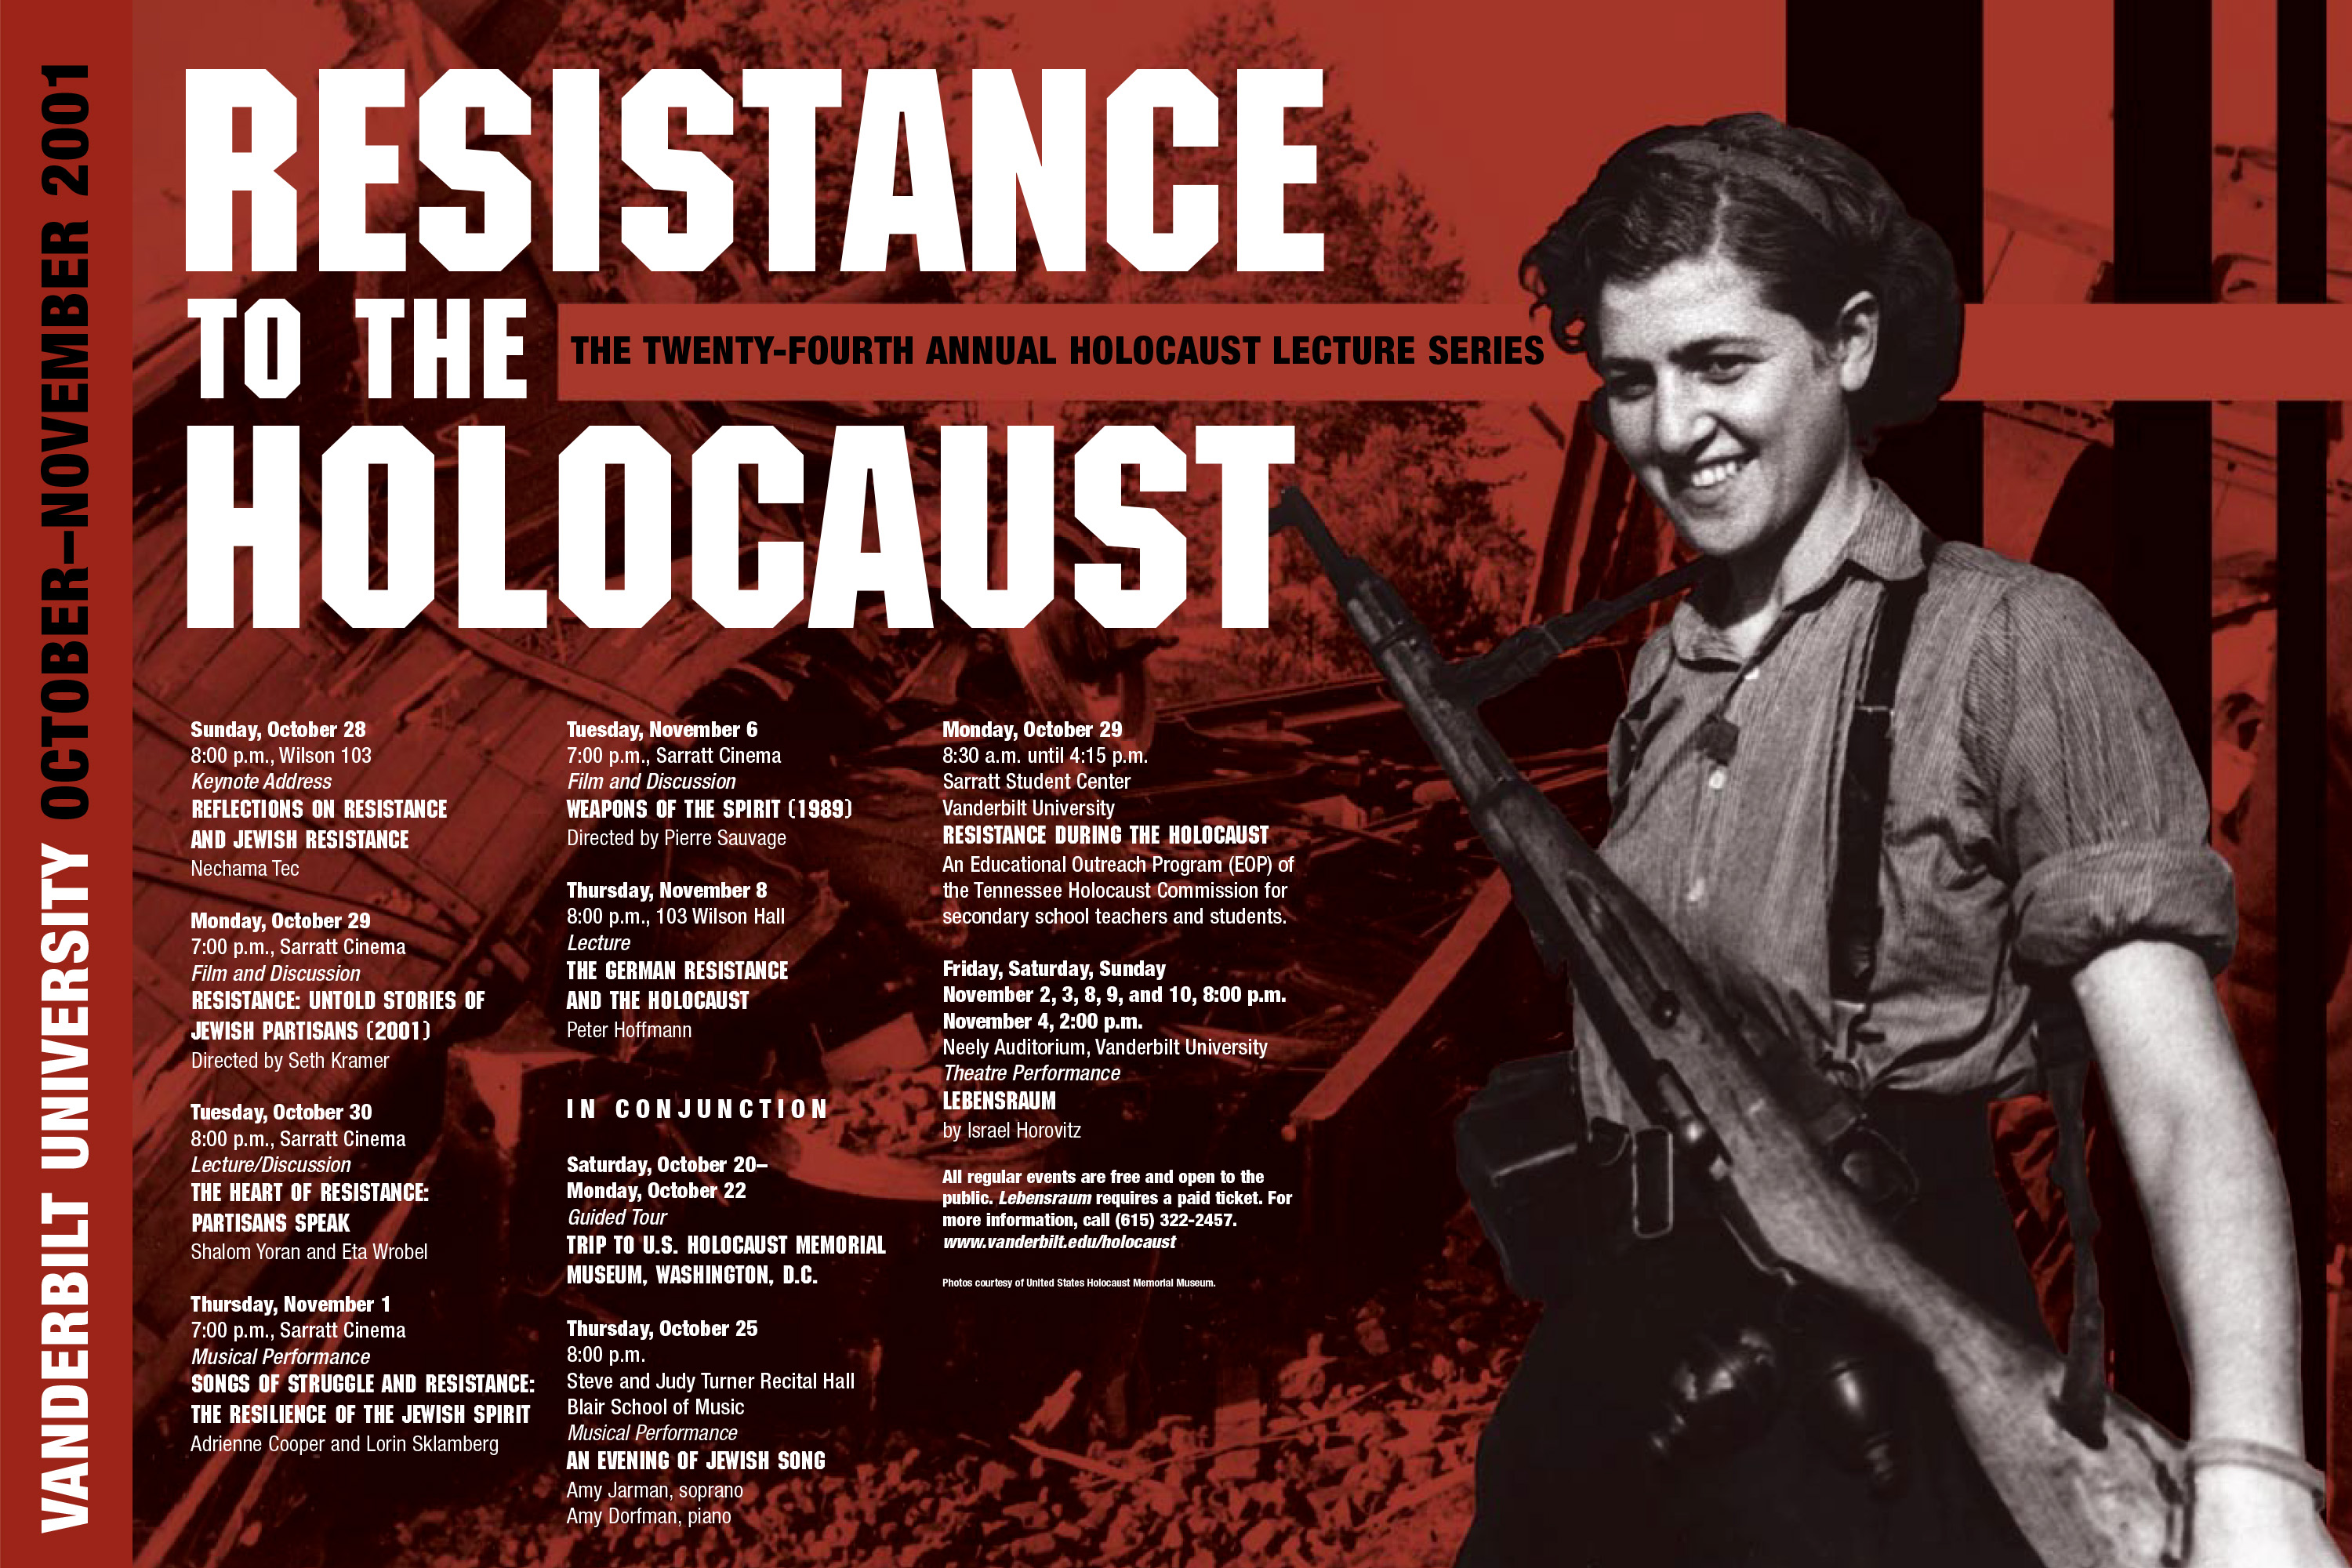 Holocaust Lecture Series poster